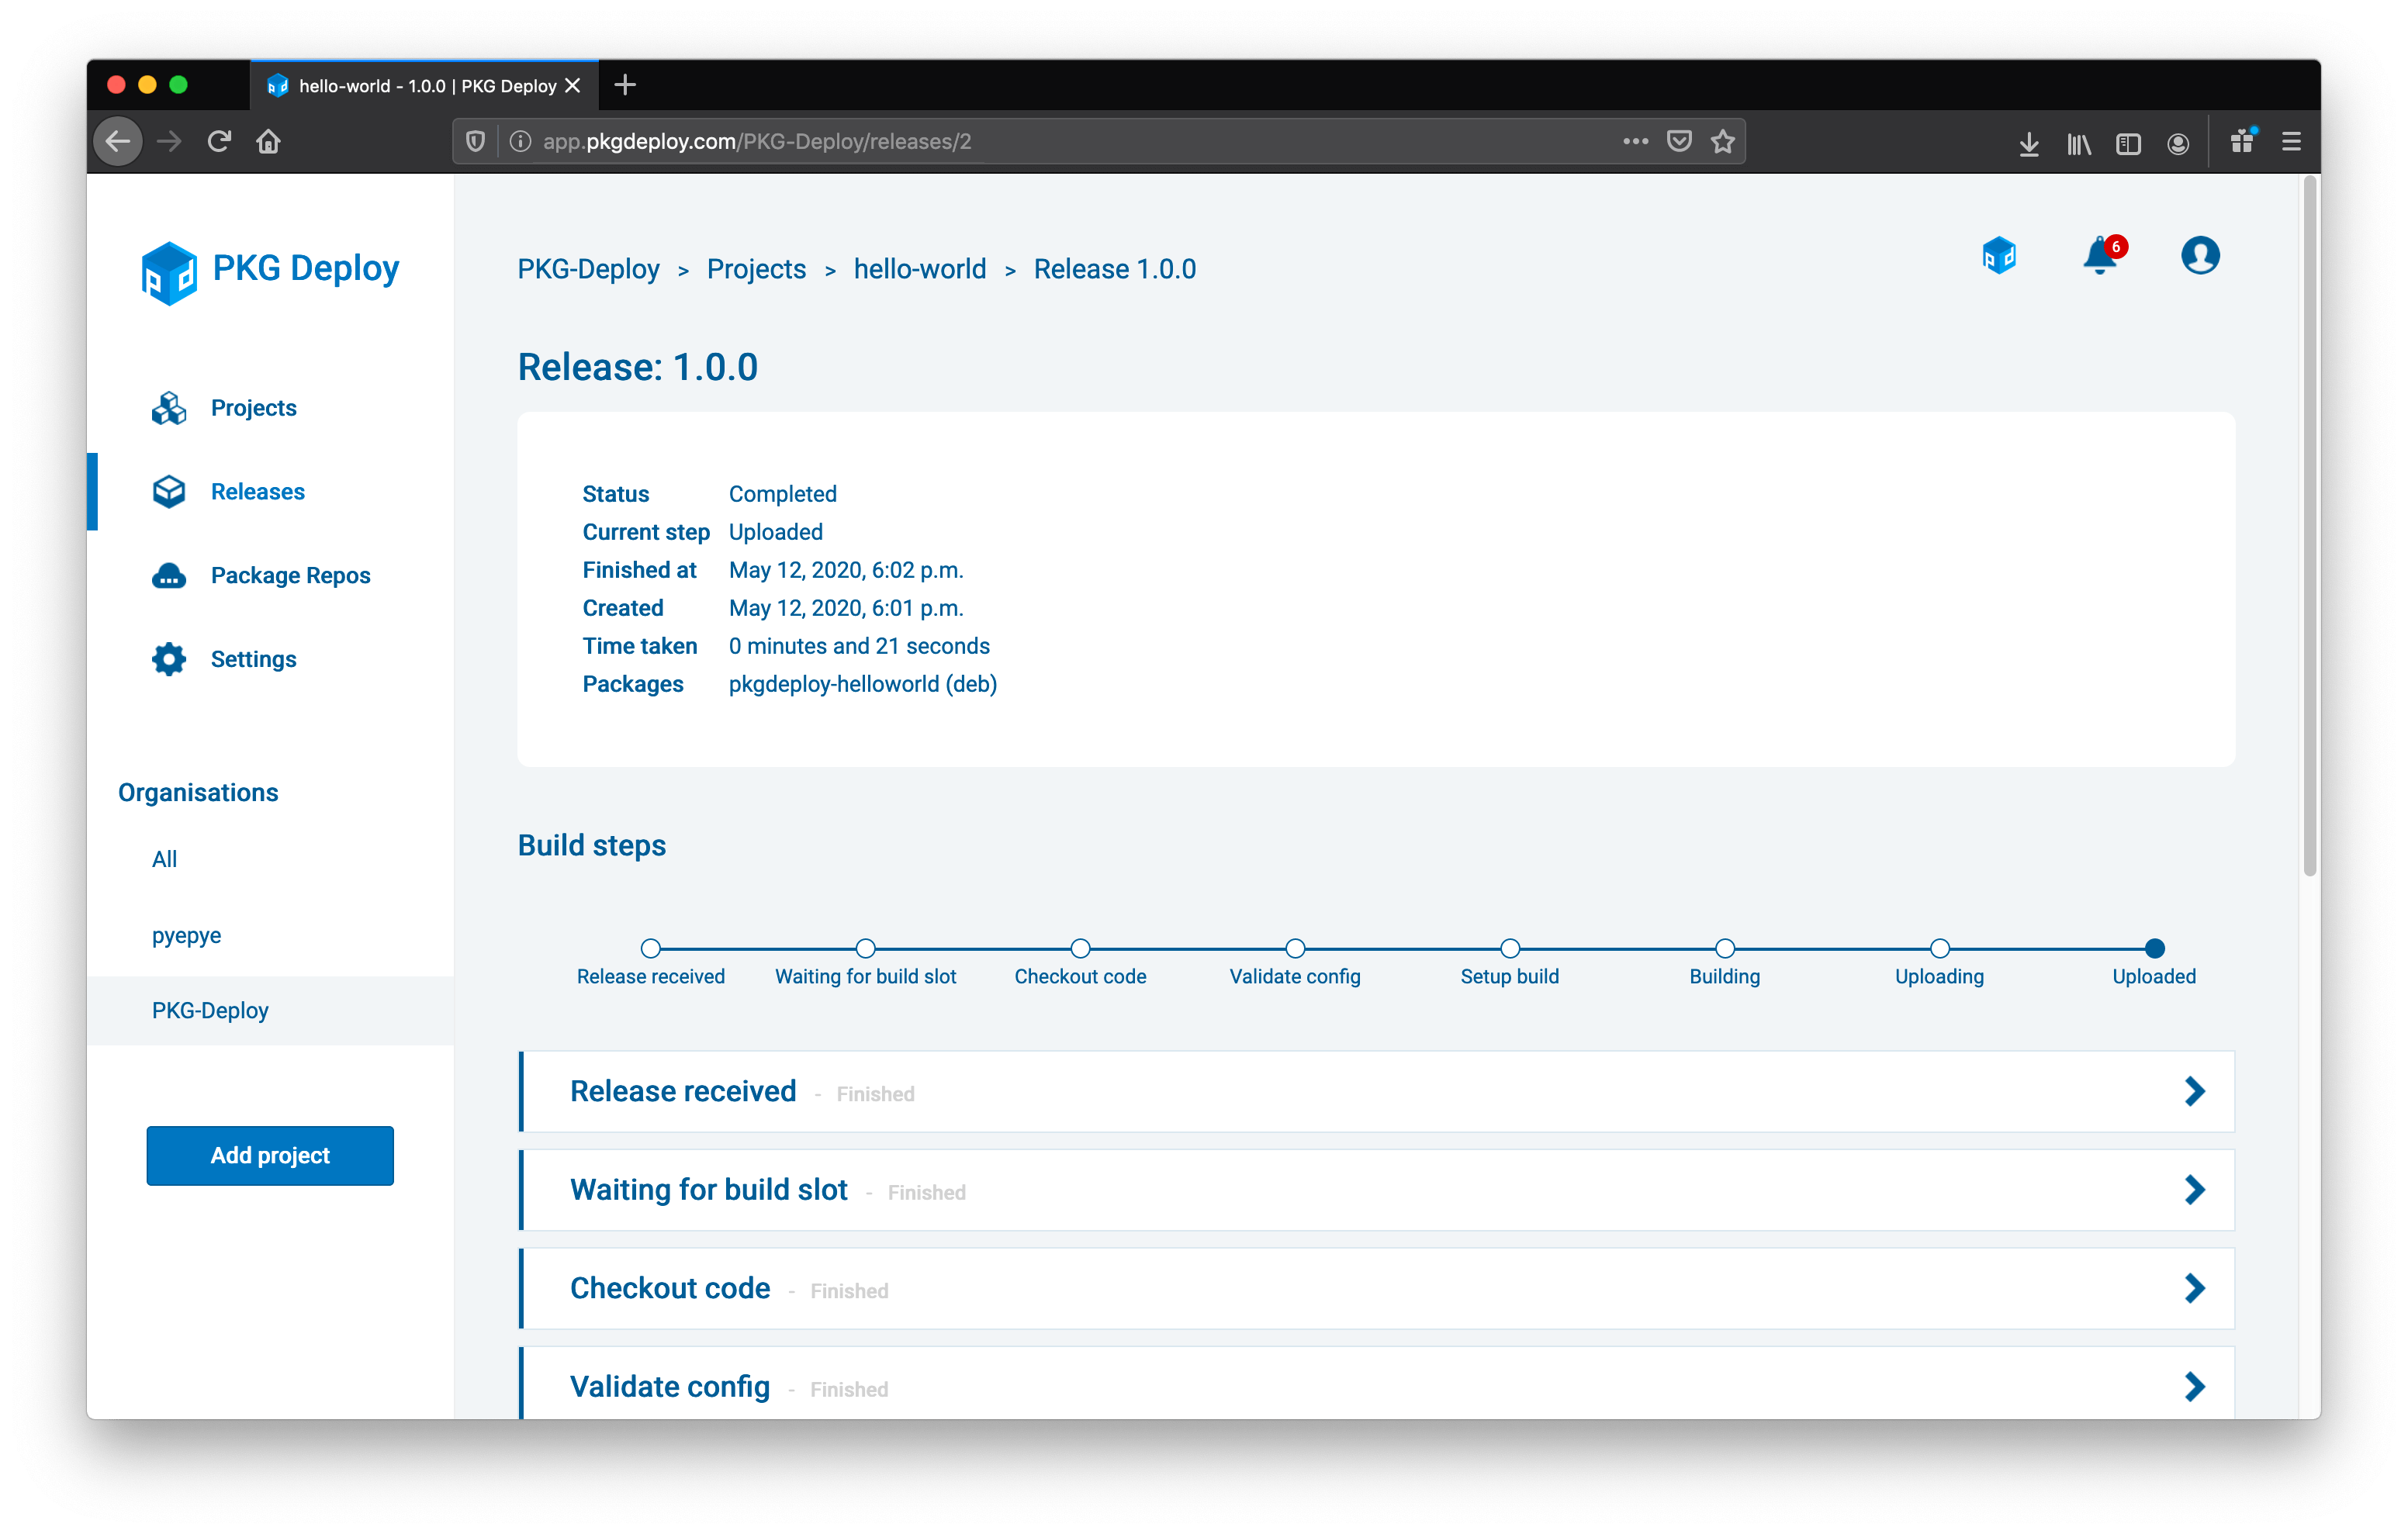 Screenshot of the PKG Deploy release page